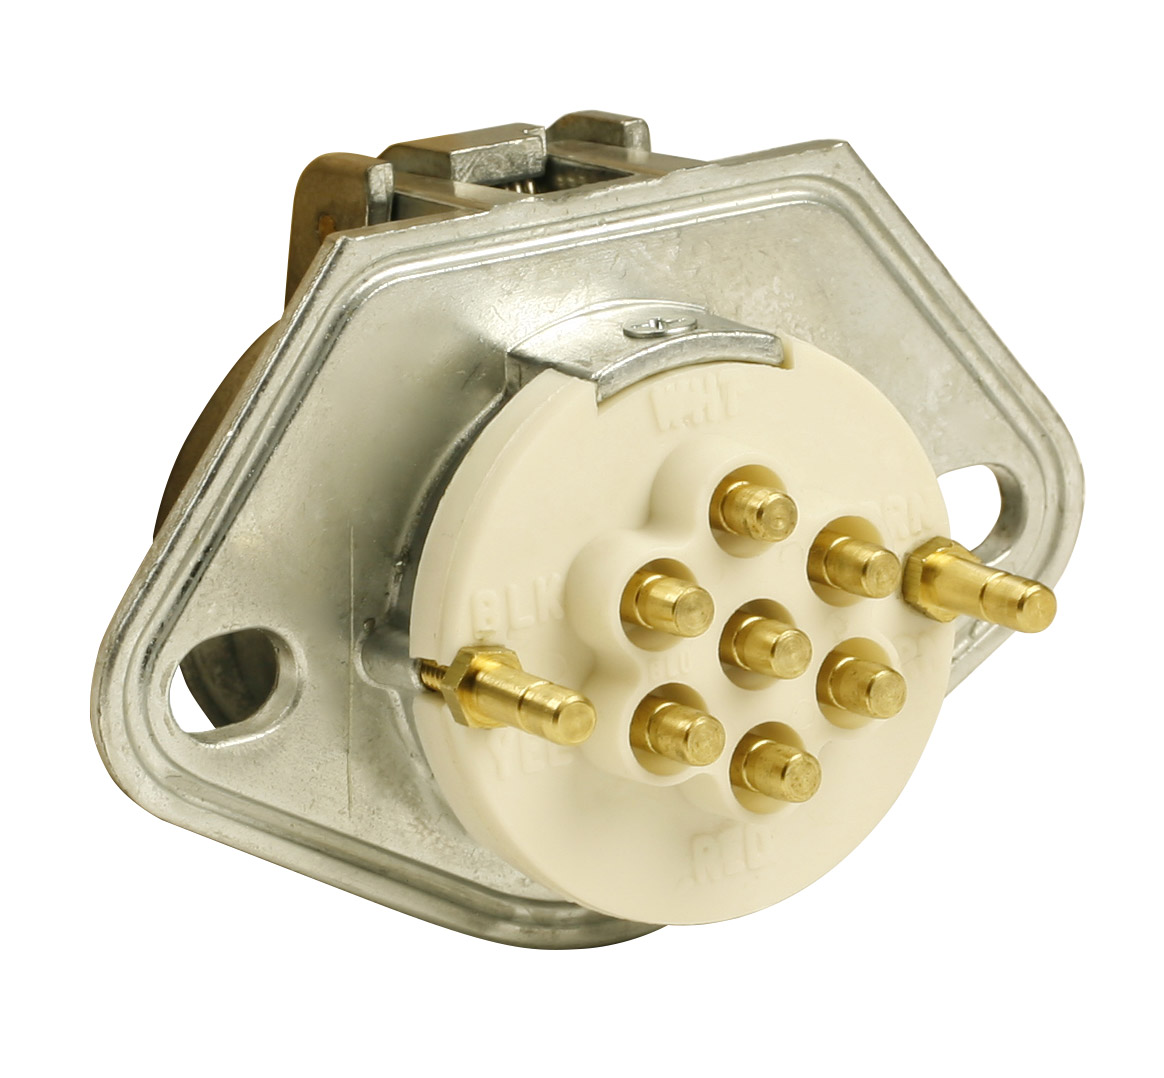 Grote Industries - 87860 – Ultra-Pin Receptacle Two-Hole Mount, Receptacle Only, Solid Pin